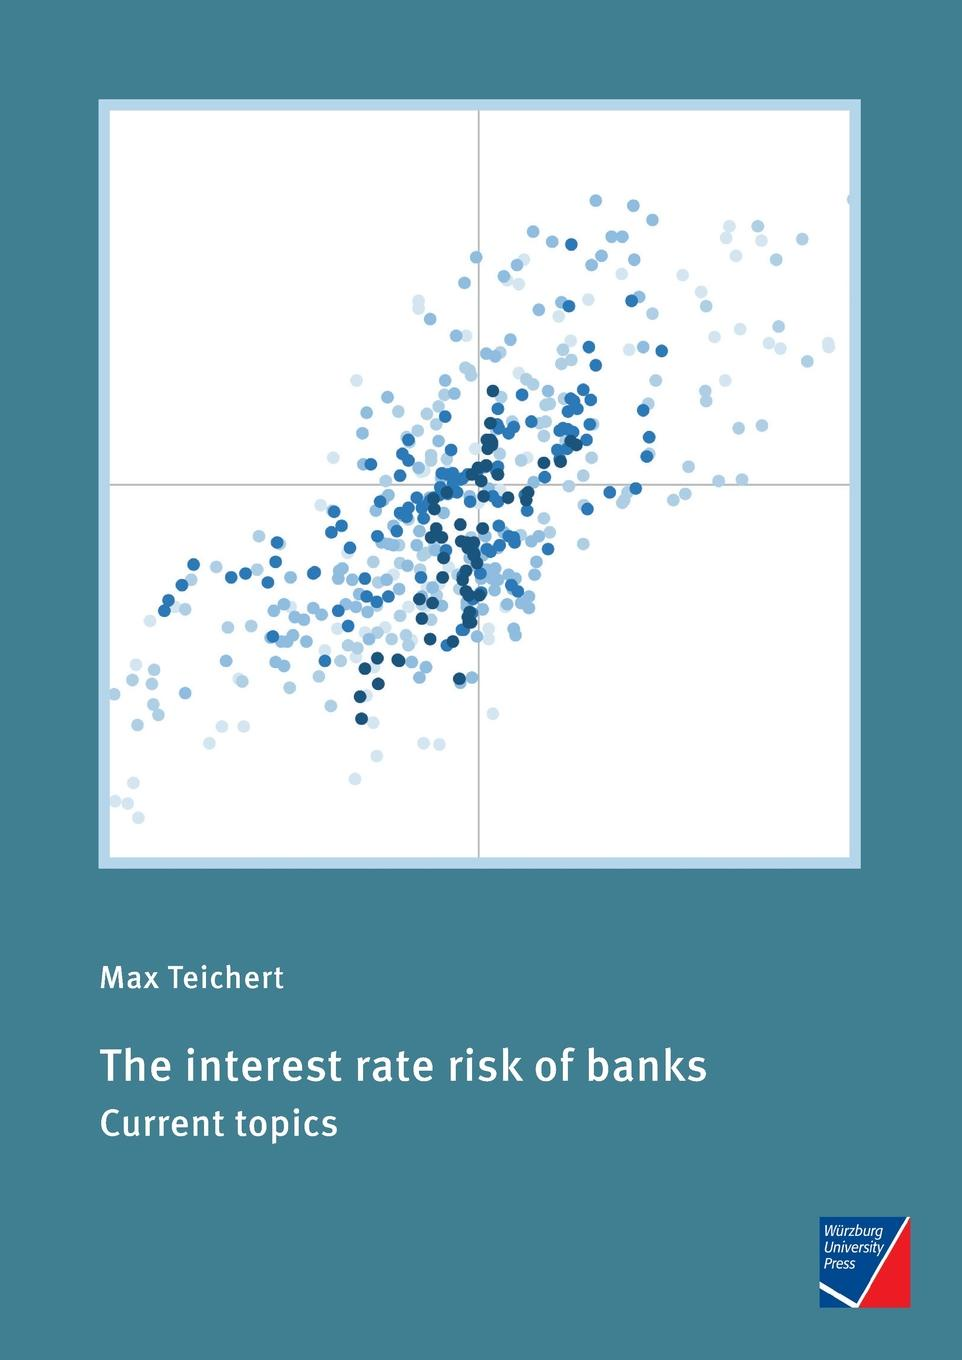 Max Teichert The interest rate risk of banks determinants of interest rate spread